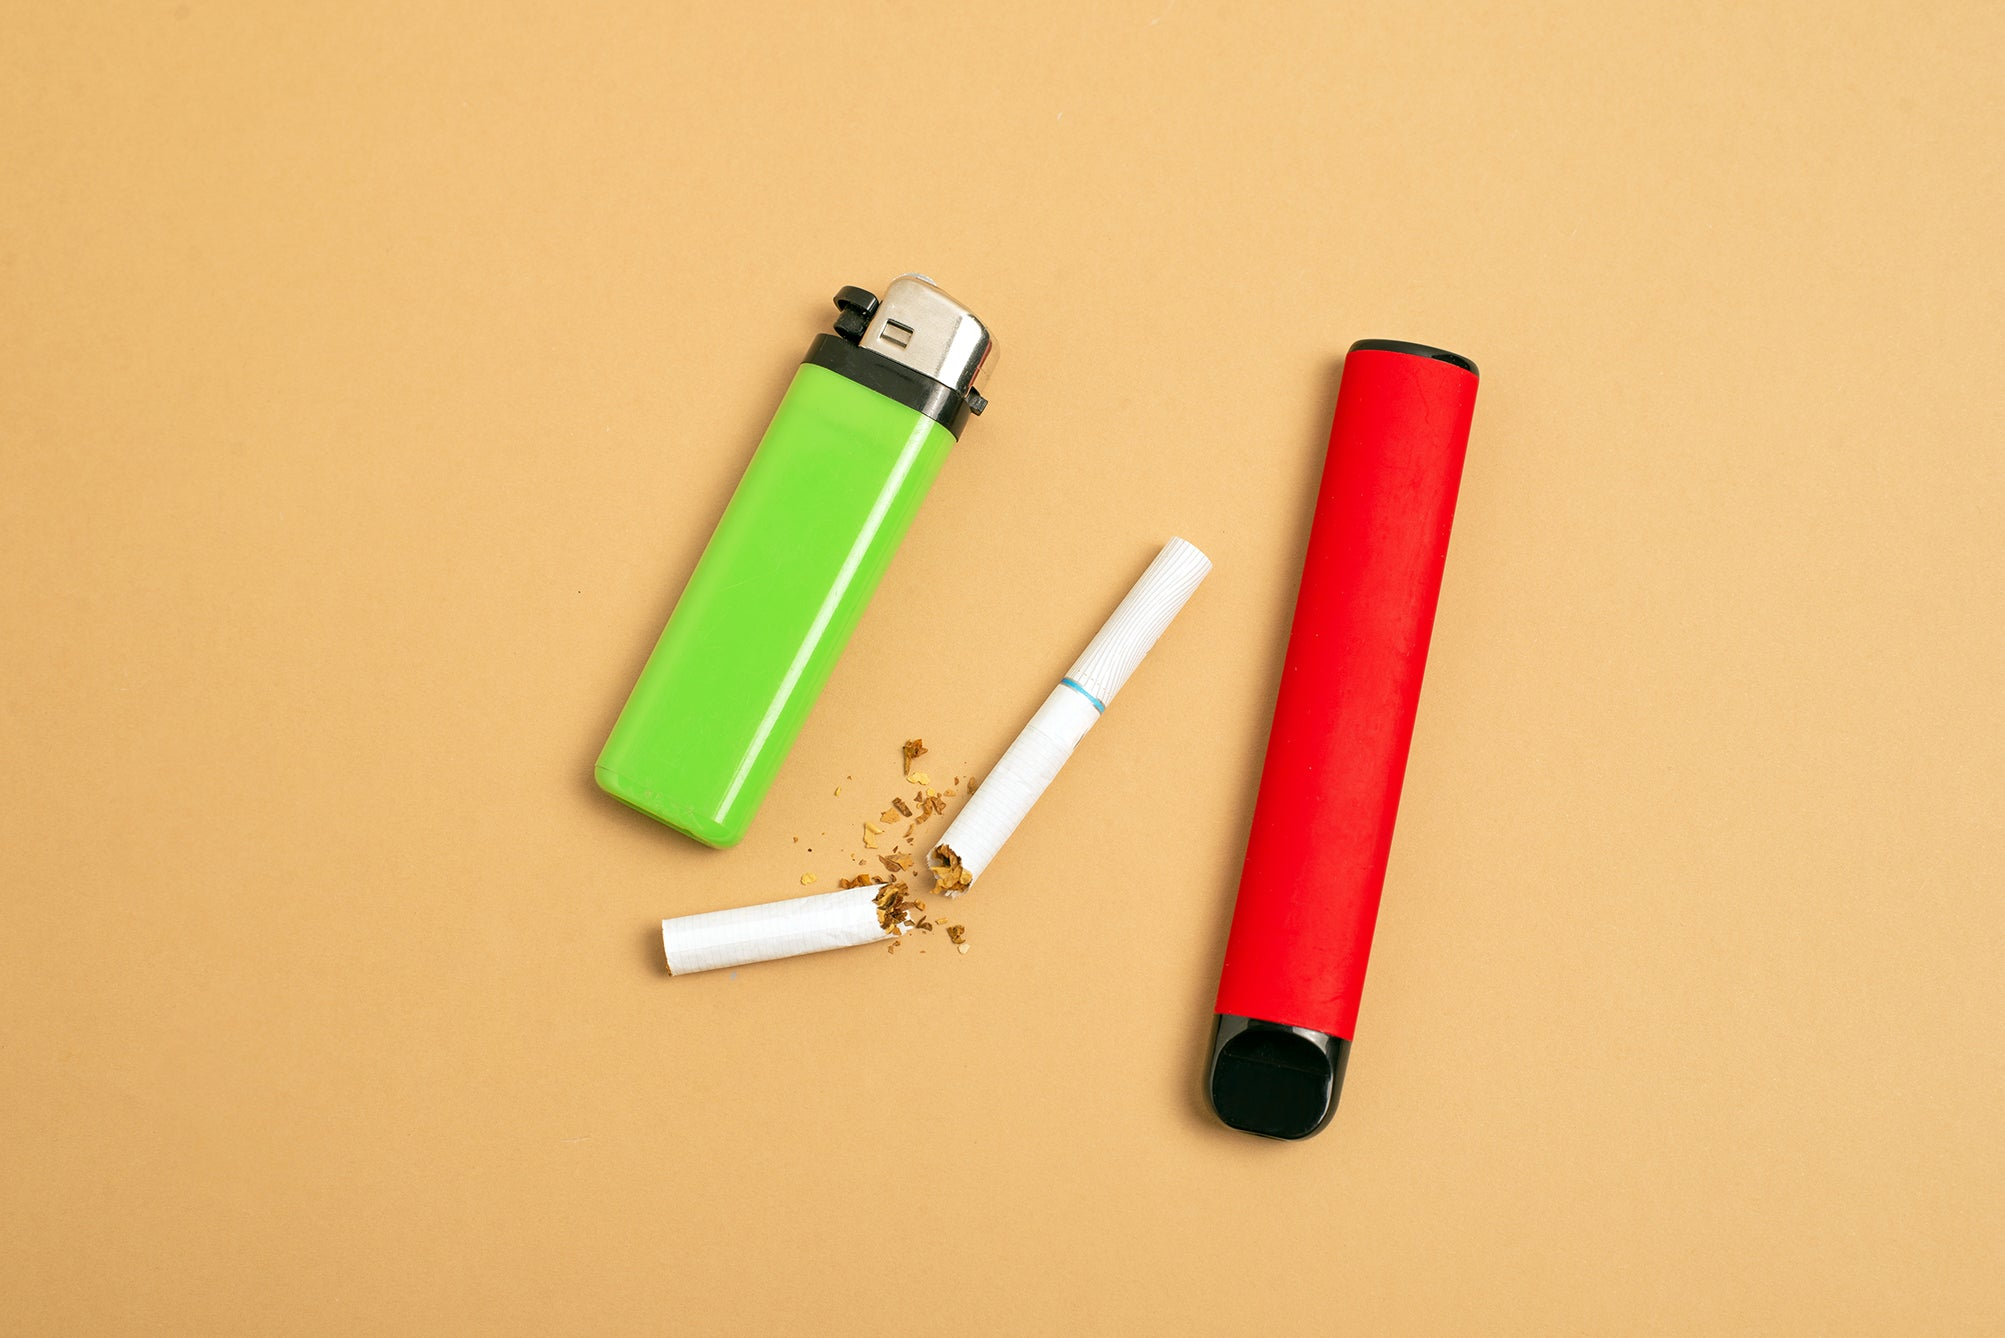 cigarette and disposable vape and lighter